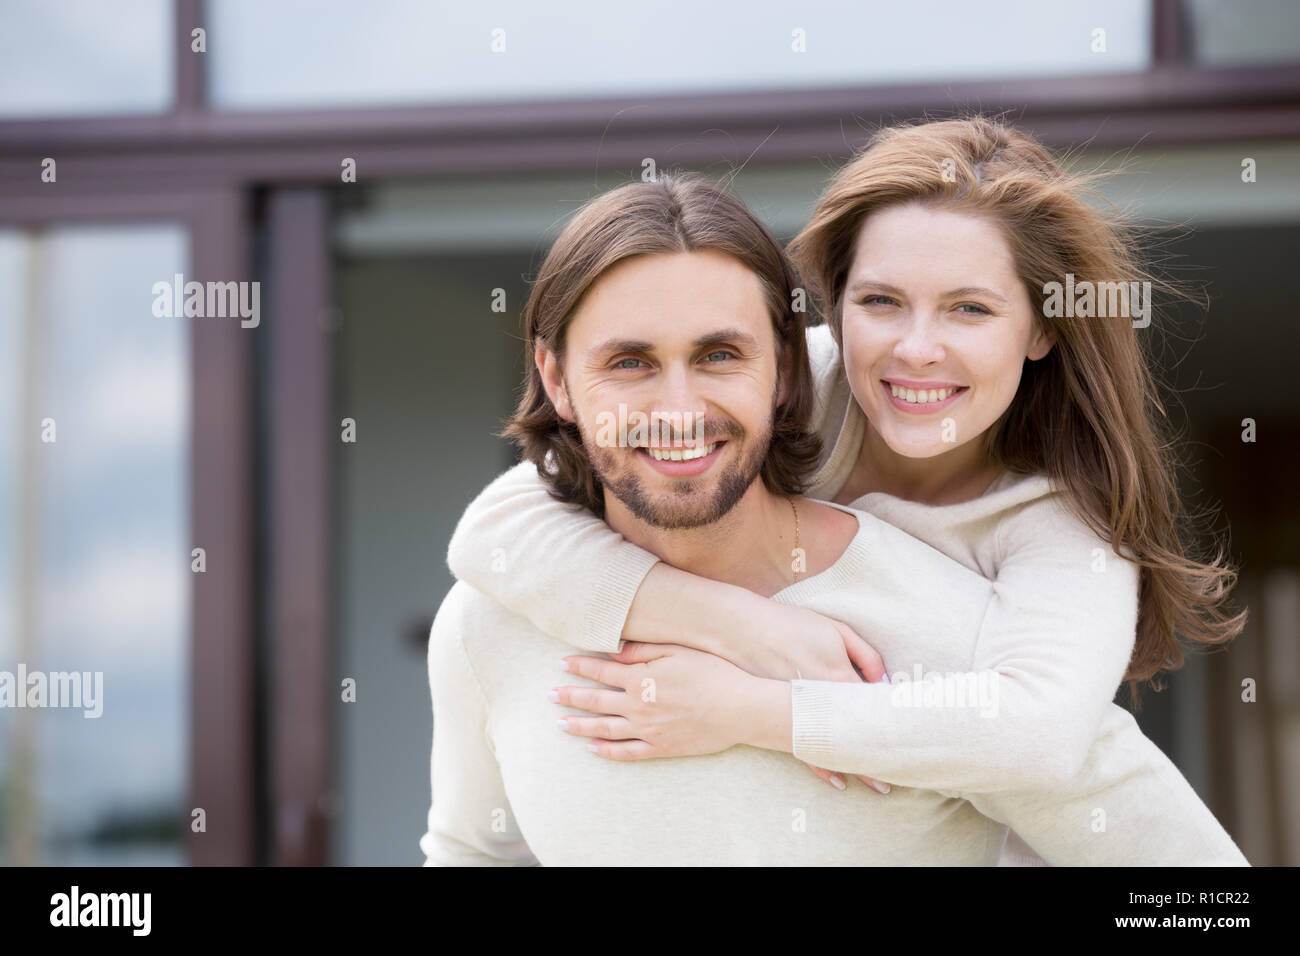 Portrait of attractive smiling married couple outdoors - Stock Image